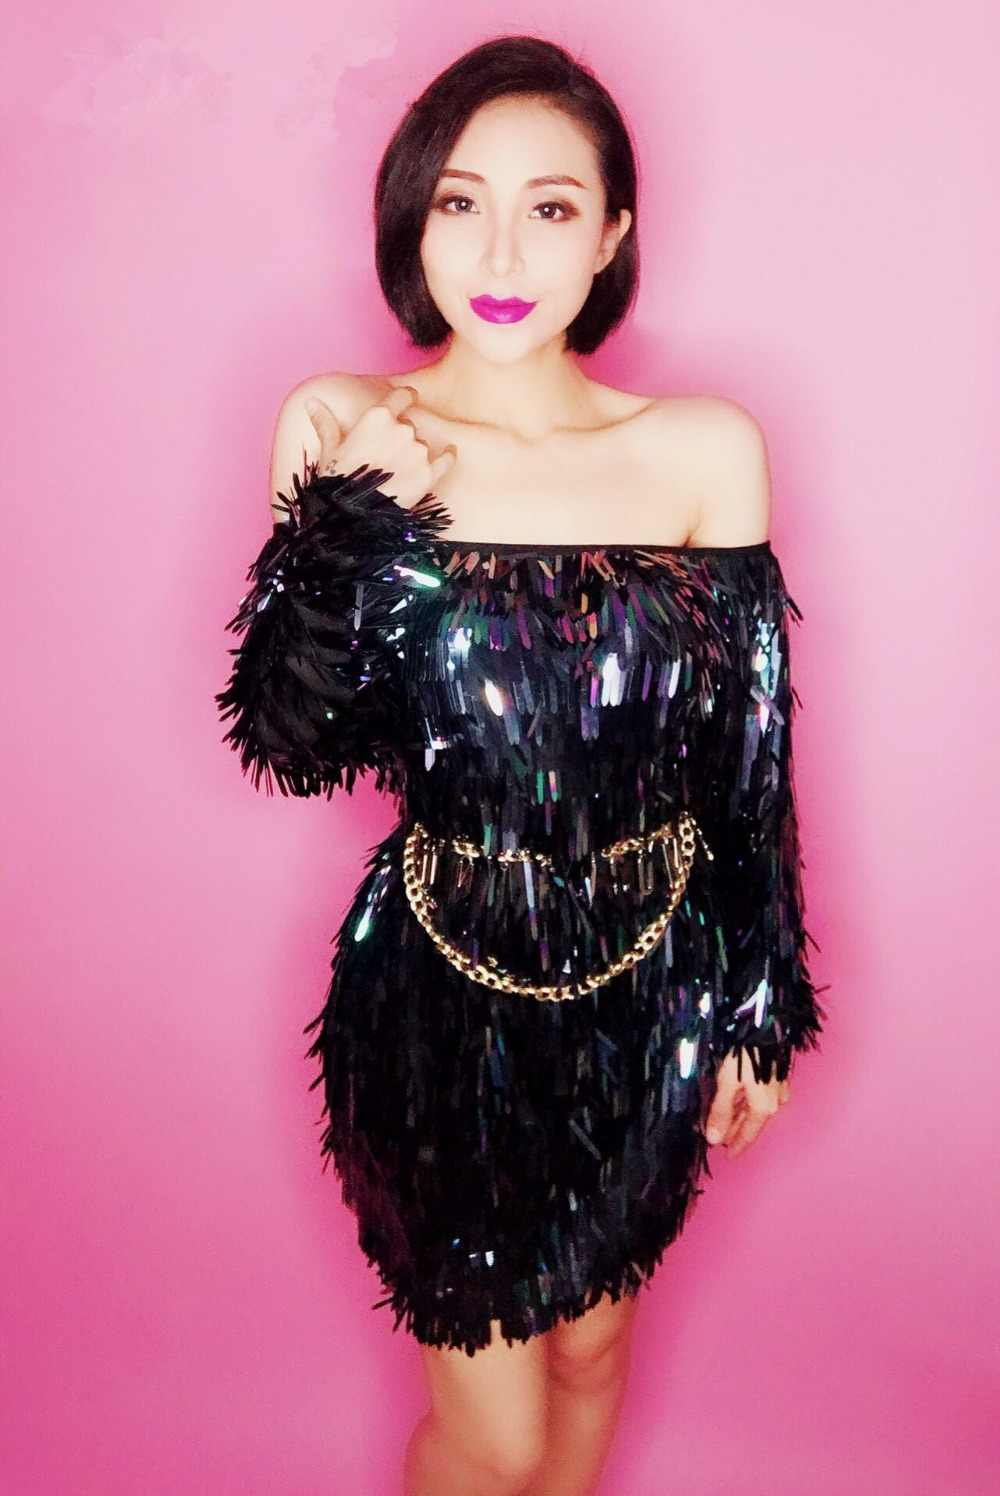 2a171f5ee0 Black Sequins Short Dress Women Stage Costume Sequined Strapless Dress Bar  Female Singer DJ Dance Wear Prom Star Party One Piece